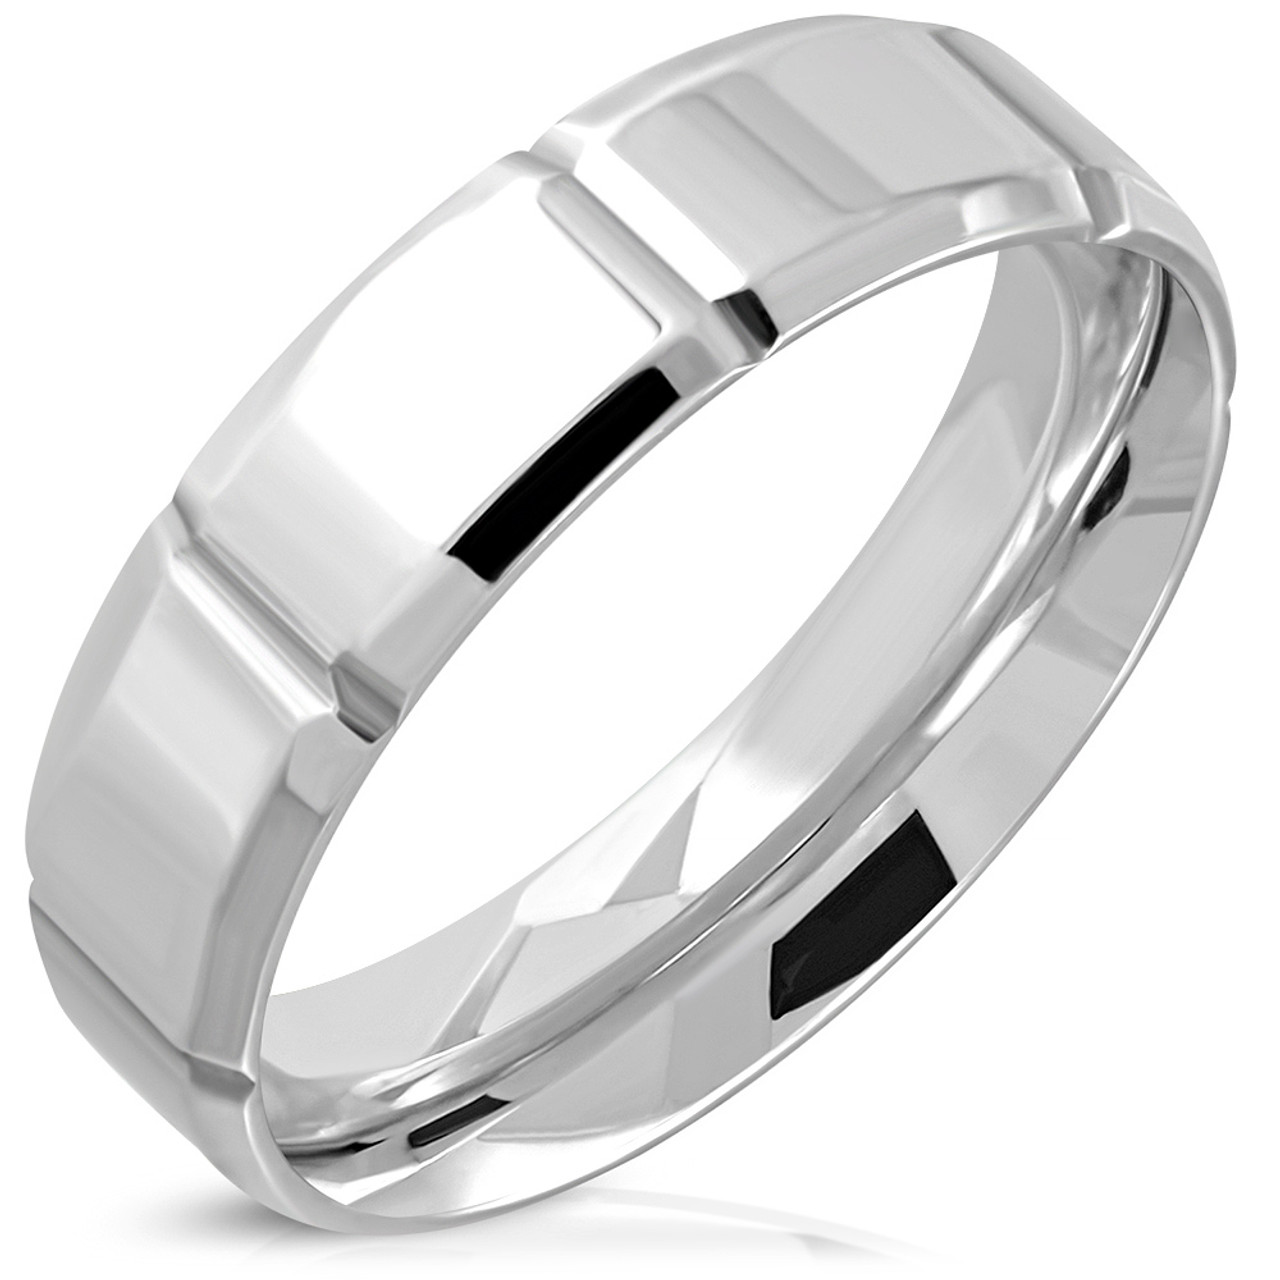 Stainless Steel Polished and Brushed Grooved CZ Ring Size 10.5 Length Width 7